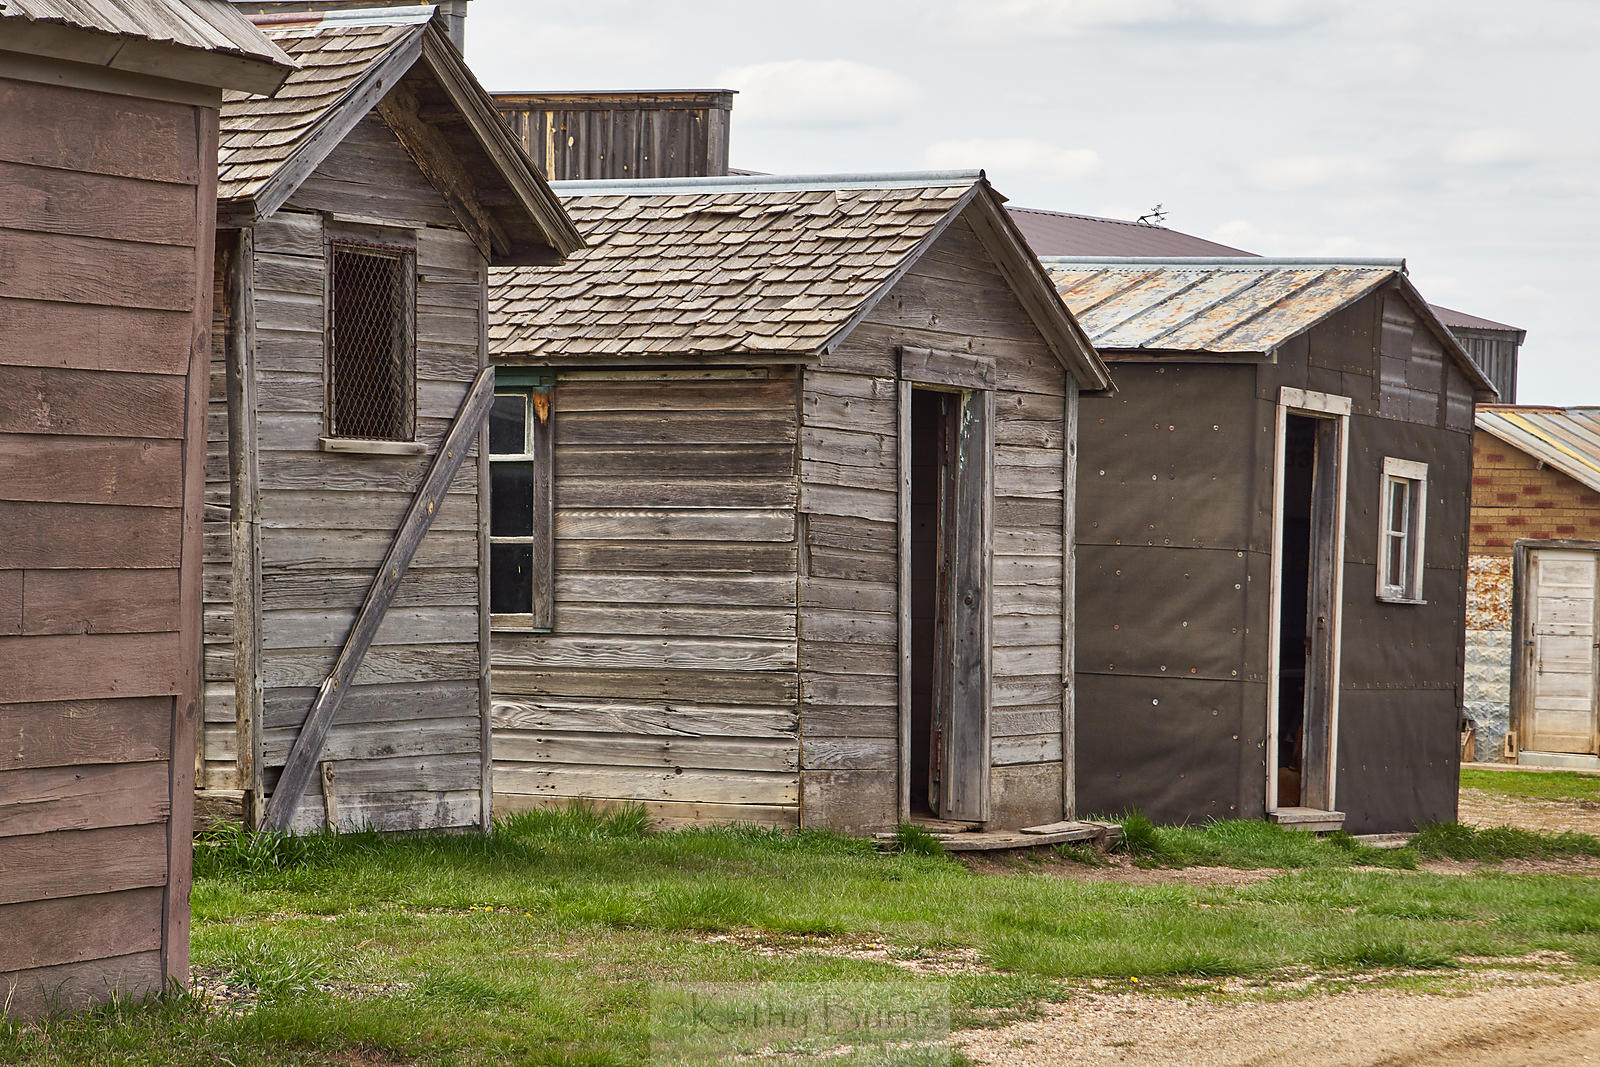 1880s Town in South Dakota